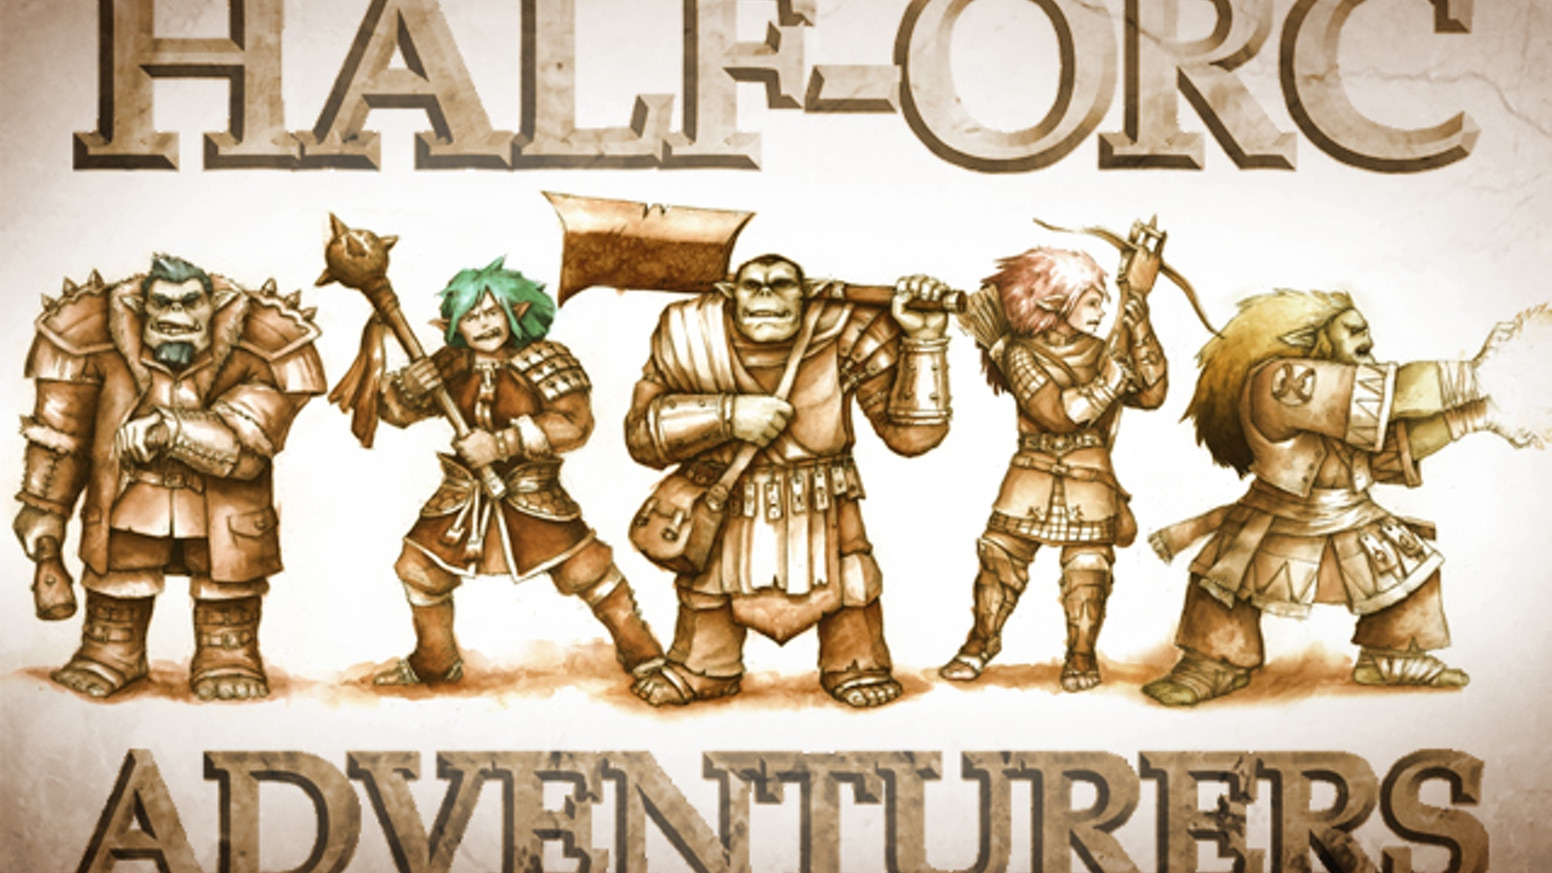 The Half-Orc Adventurers Project will create a diverse group of Half-orc miniatures for Dungeon-crawling and and tabletop wargames.